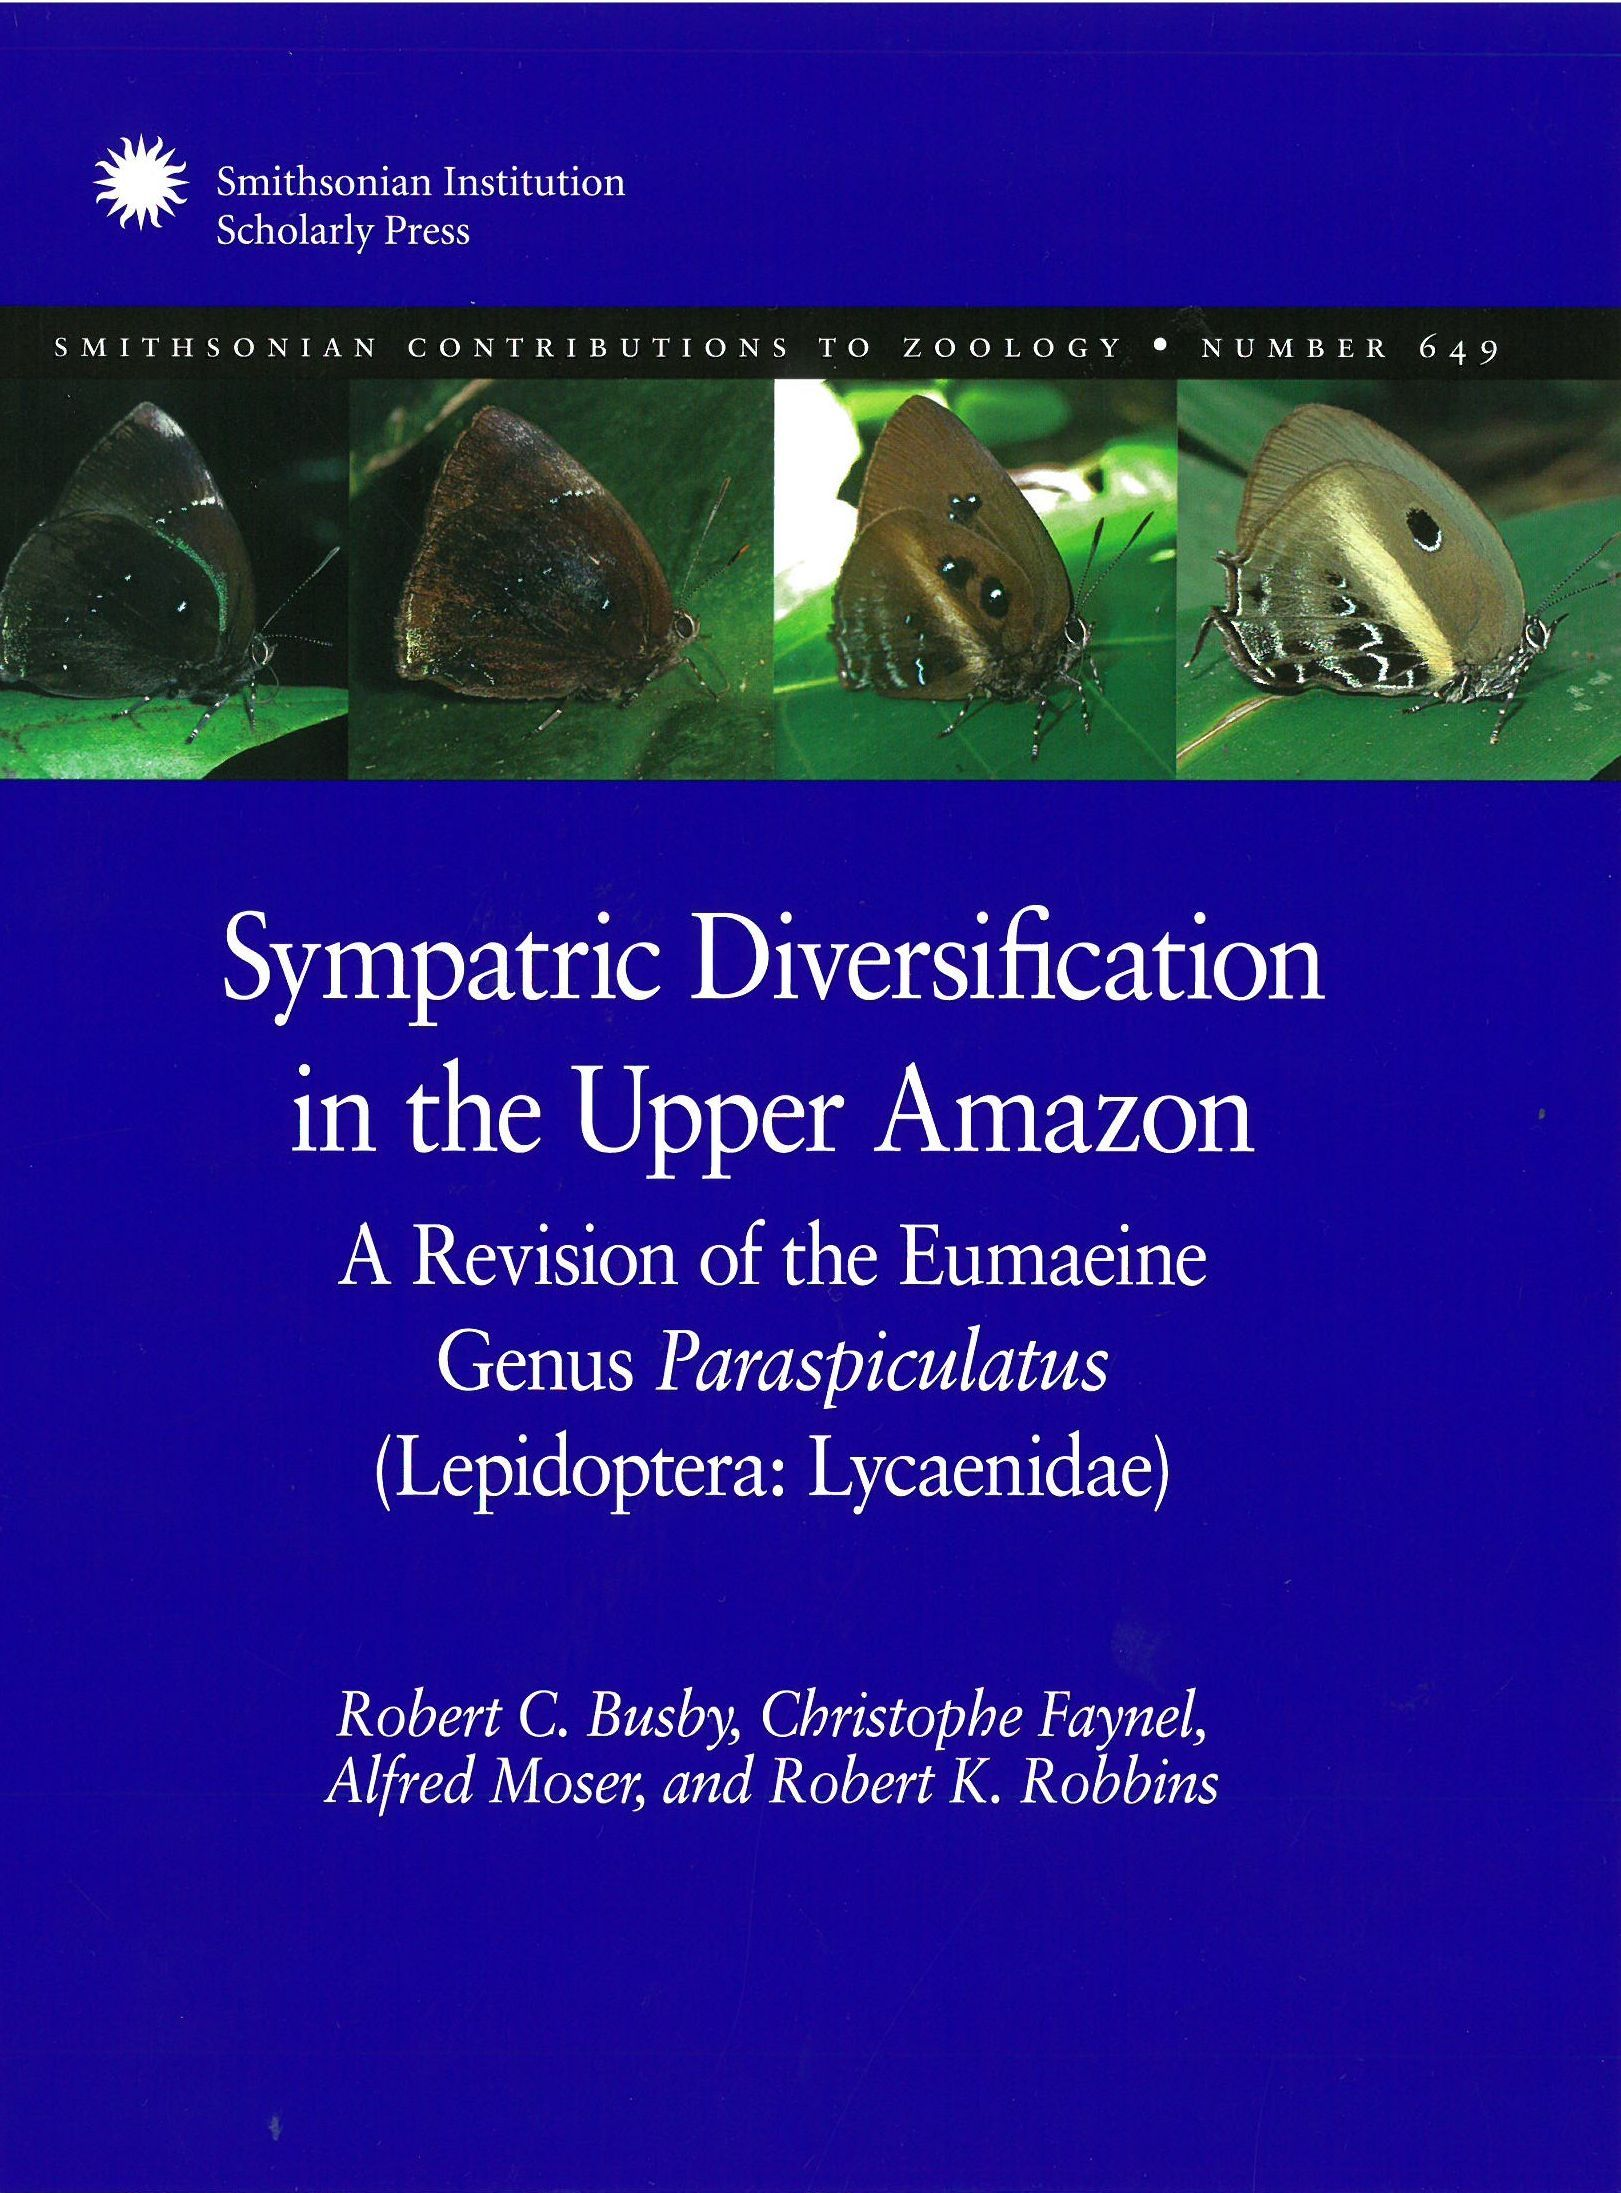 Sympatric Diversification In The Upper Amazon A Revision Of The Eumaeine Genus Paraspiculatus Lepidoptera Lycaenidae Robert C Busby And Three Others